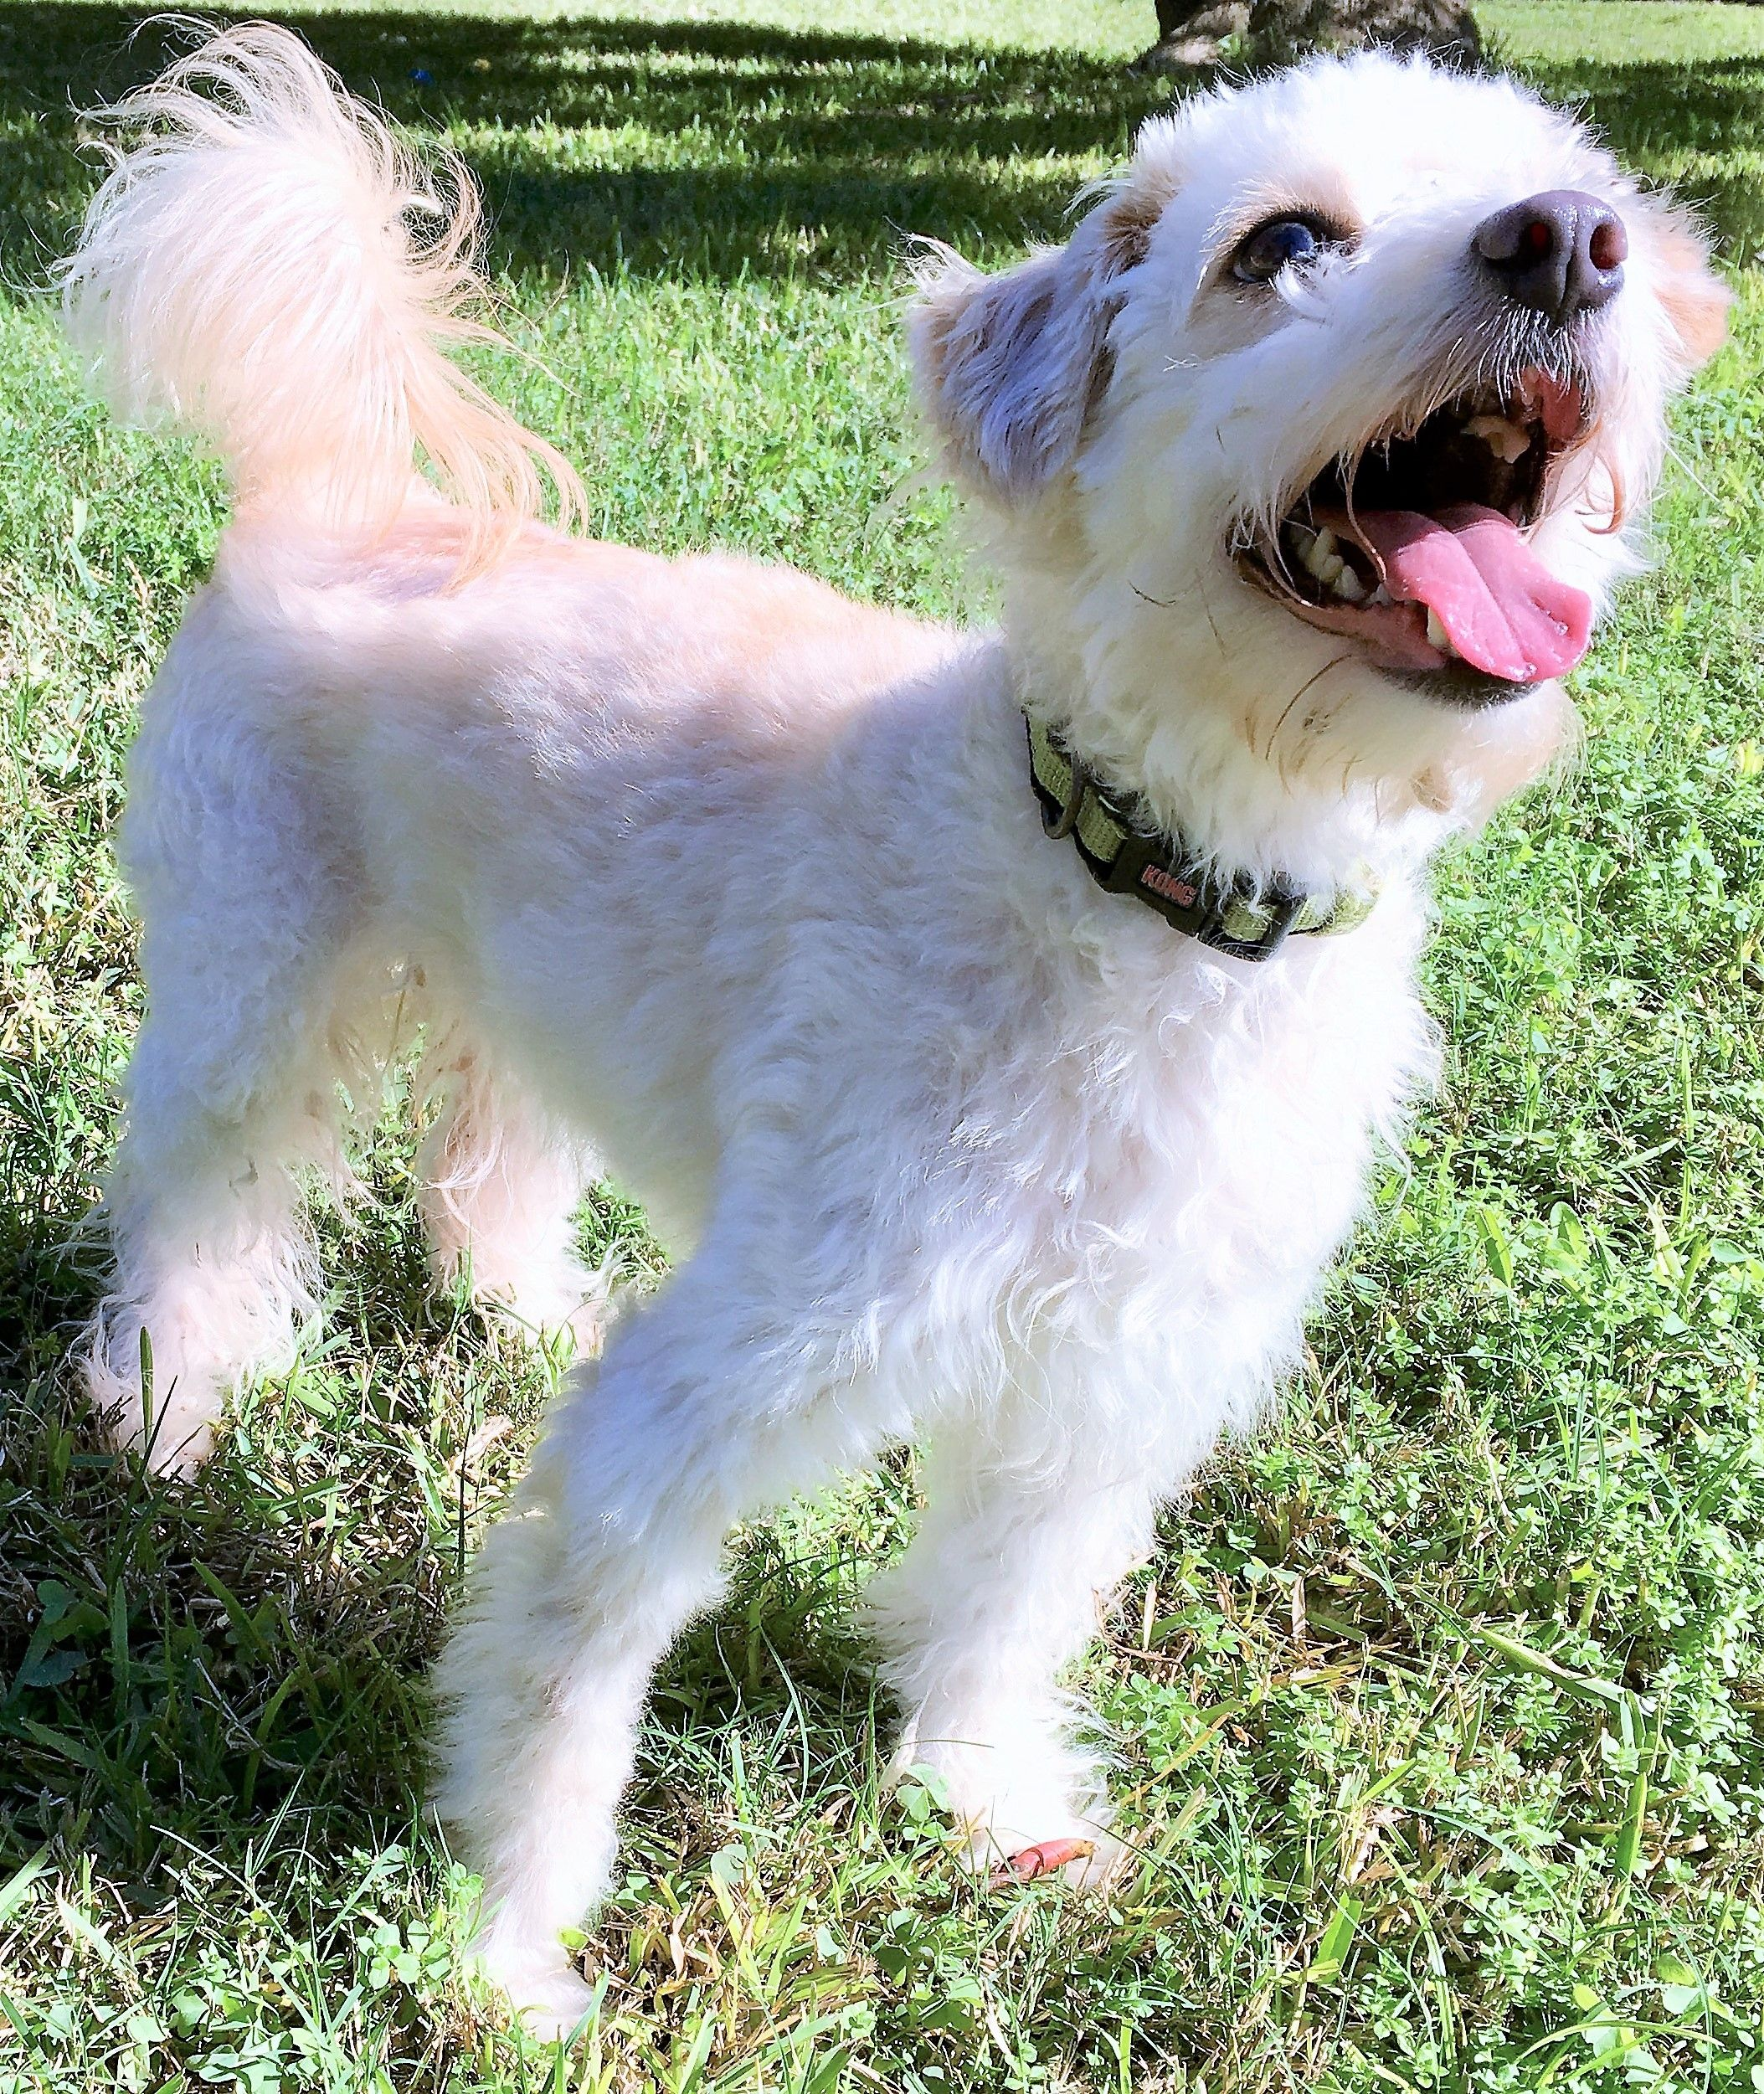 Poodle Miniature Dog For Adoption In Waco Tx Adn 390584 On Puppyfinder Com Gender Female Age Adult Miniature Dogs Dogs Cute Dogs